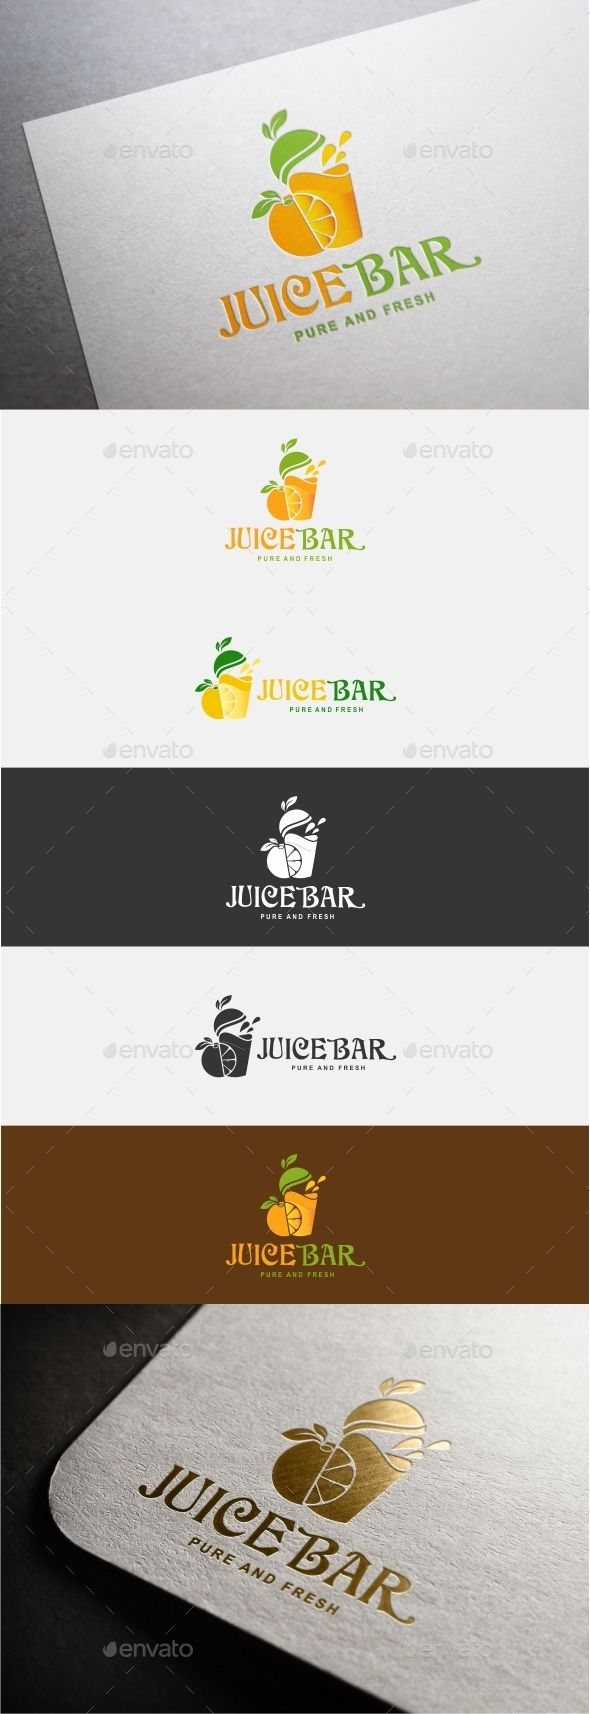 Juice Bar Logo — Vector EPS #colors #ecology • Available here → https://graphicriver.net/item/juice-bar-logo/19196677?ref=pxcr